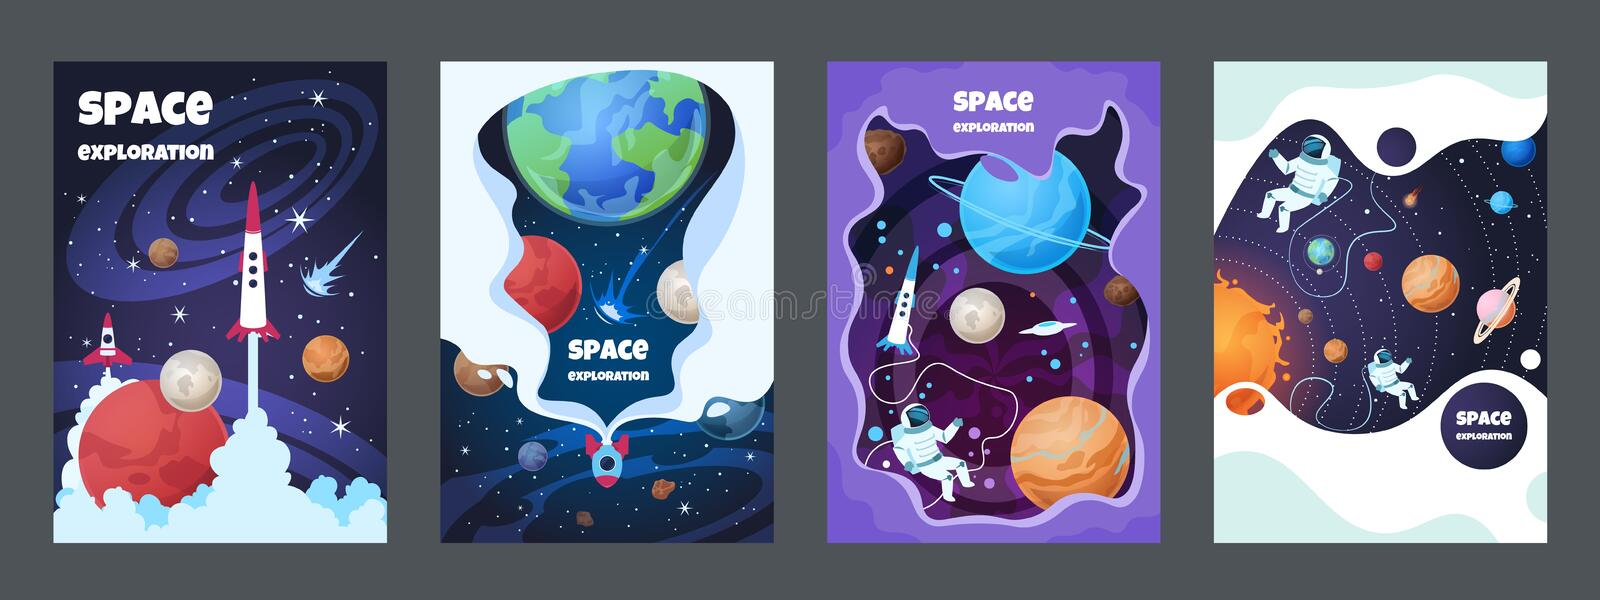 Cartoon space flyer. Universe galaxy banner planet science poster astronaut poster frame brochure cover design. Vector vector illustration